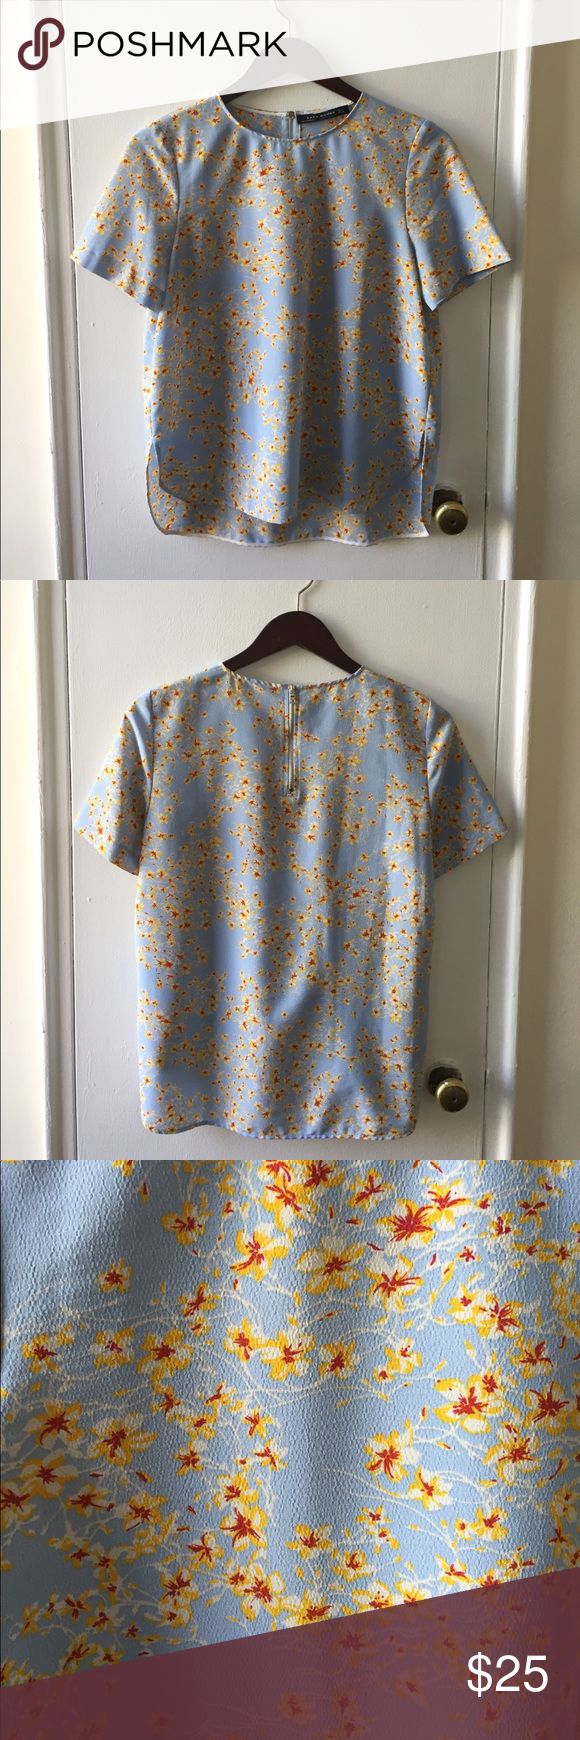 Zara Silky Floral Tee Tshirt style blouse with blue/yellow/red floral pattern. Short silver zip up back. EUC. Size M. Zara Tops Blouses